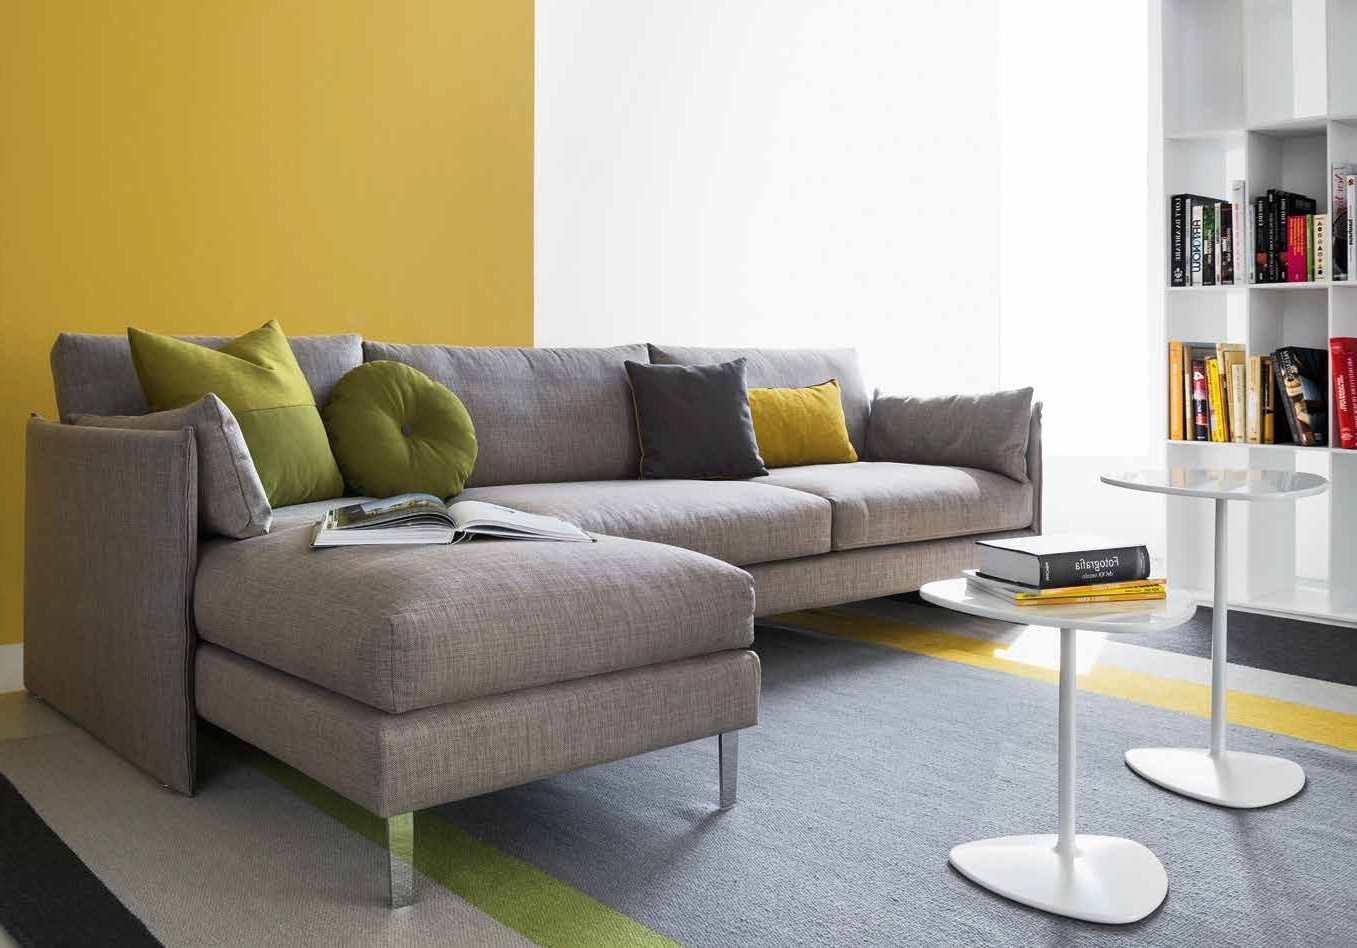 Urban Sectional Sofa Cs/3369, Calligaris Italy – Italmoda With Regard To Fashionable Nashua Nh Sectional Sofas (View 4 of 15)